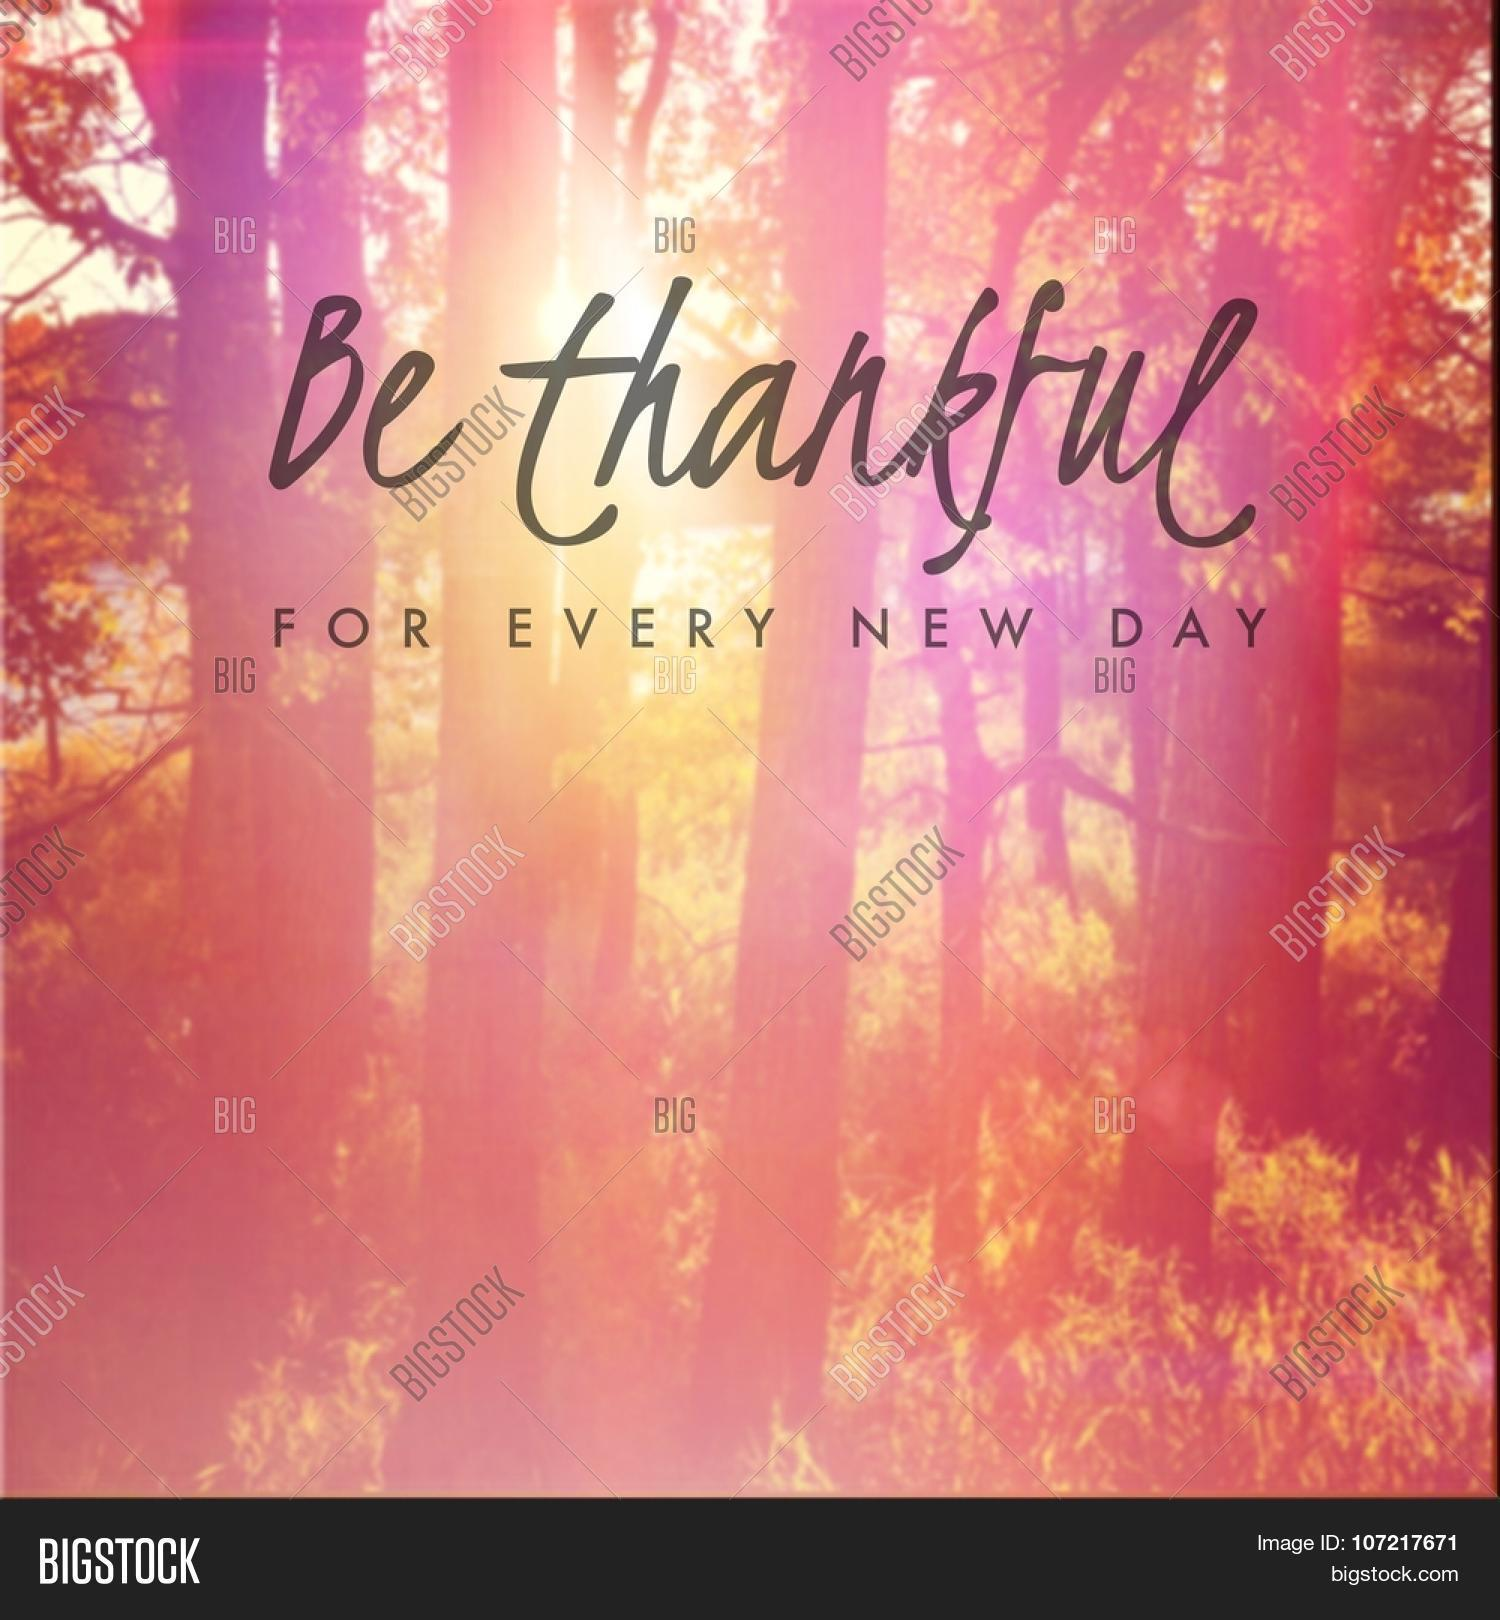 Thankful For A New Day Quotes: Inspirational Typographic Quote - Image & Photo